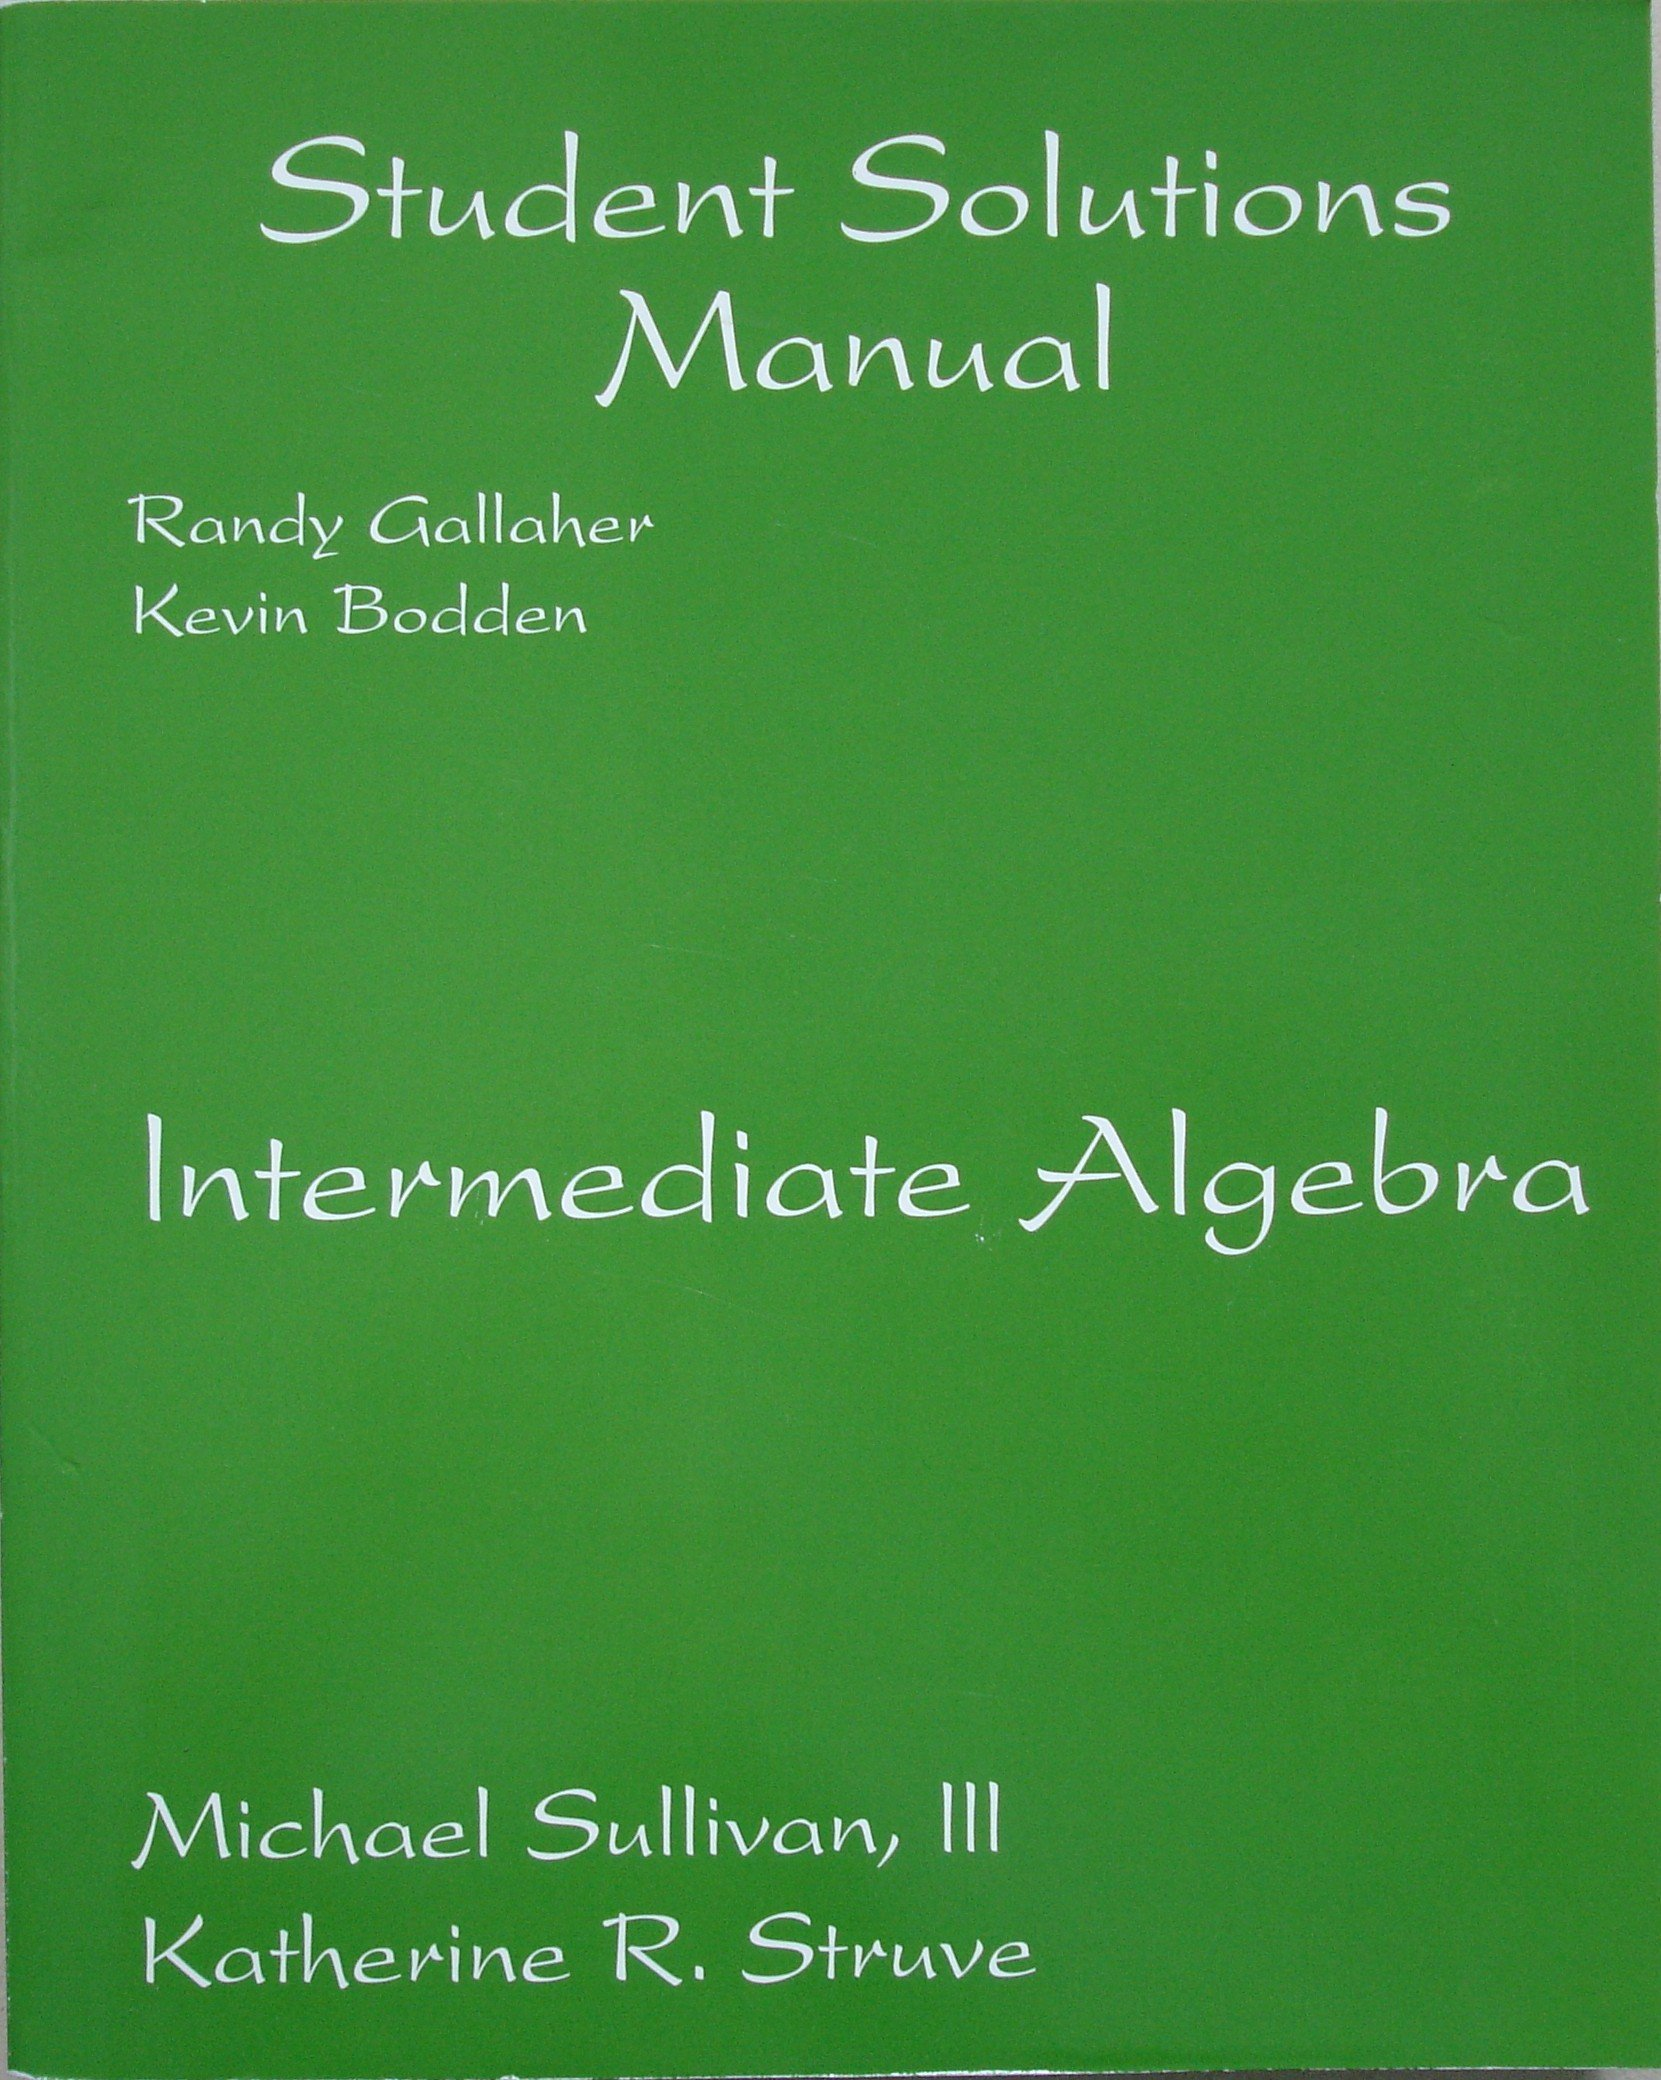 Student Solutions Manual: Intermediate Algebra: Randy Gallaher, Kevin  Bodden, Michael Sullivan, Katherine R Struve: 9780132196758: Amazon.com:  Books